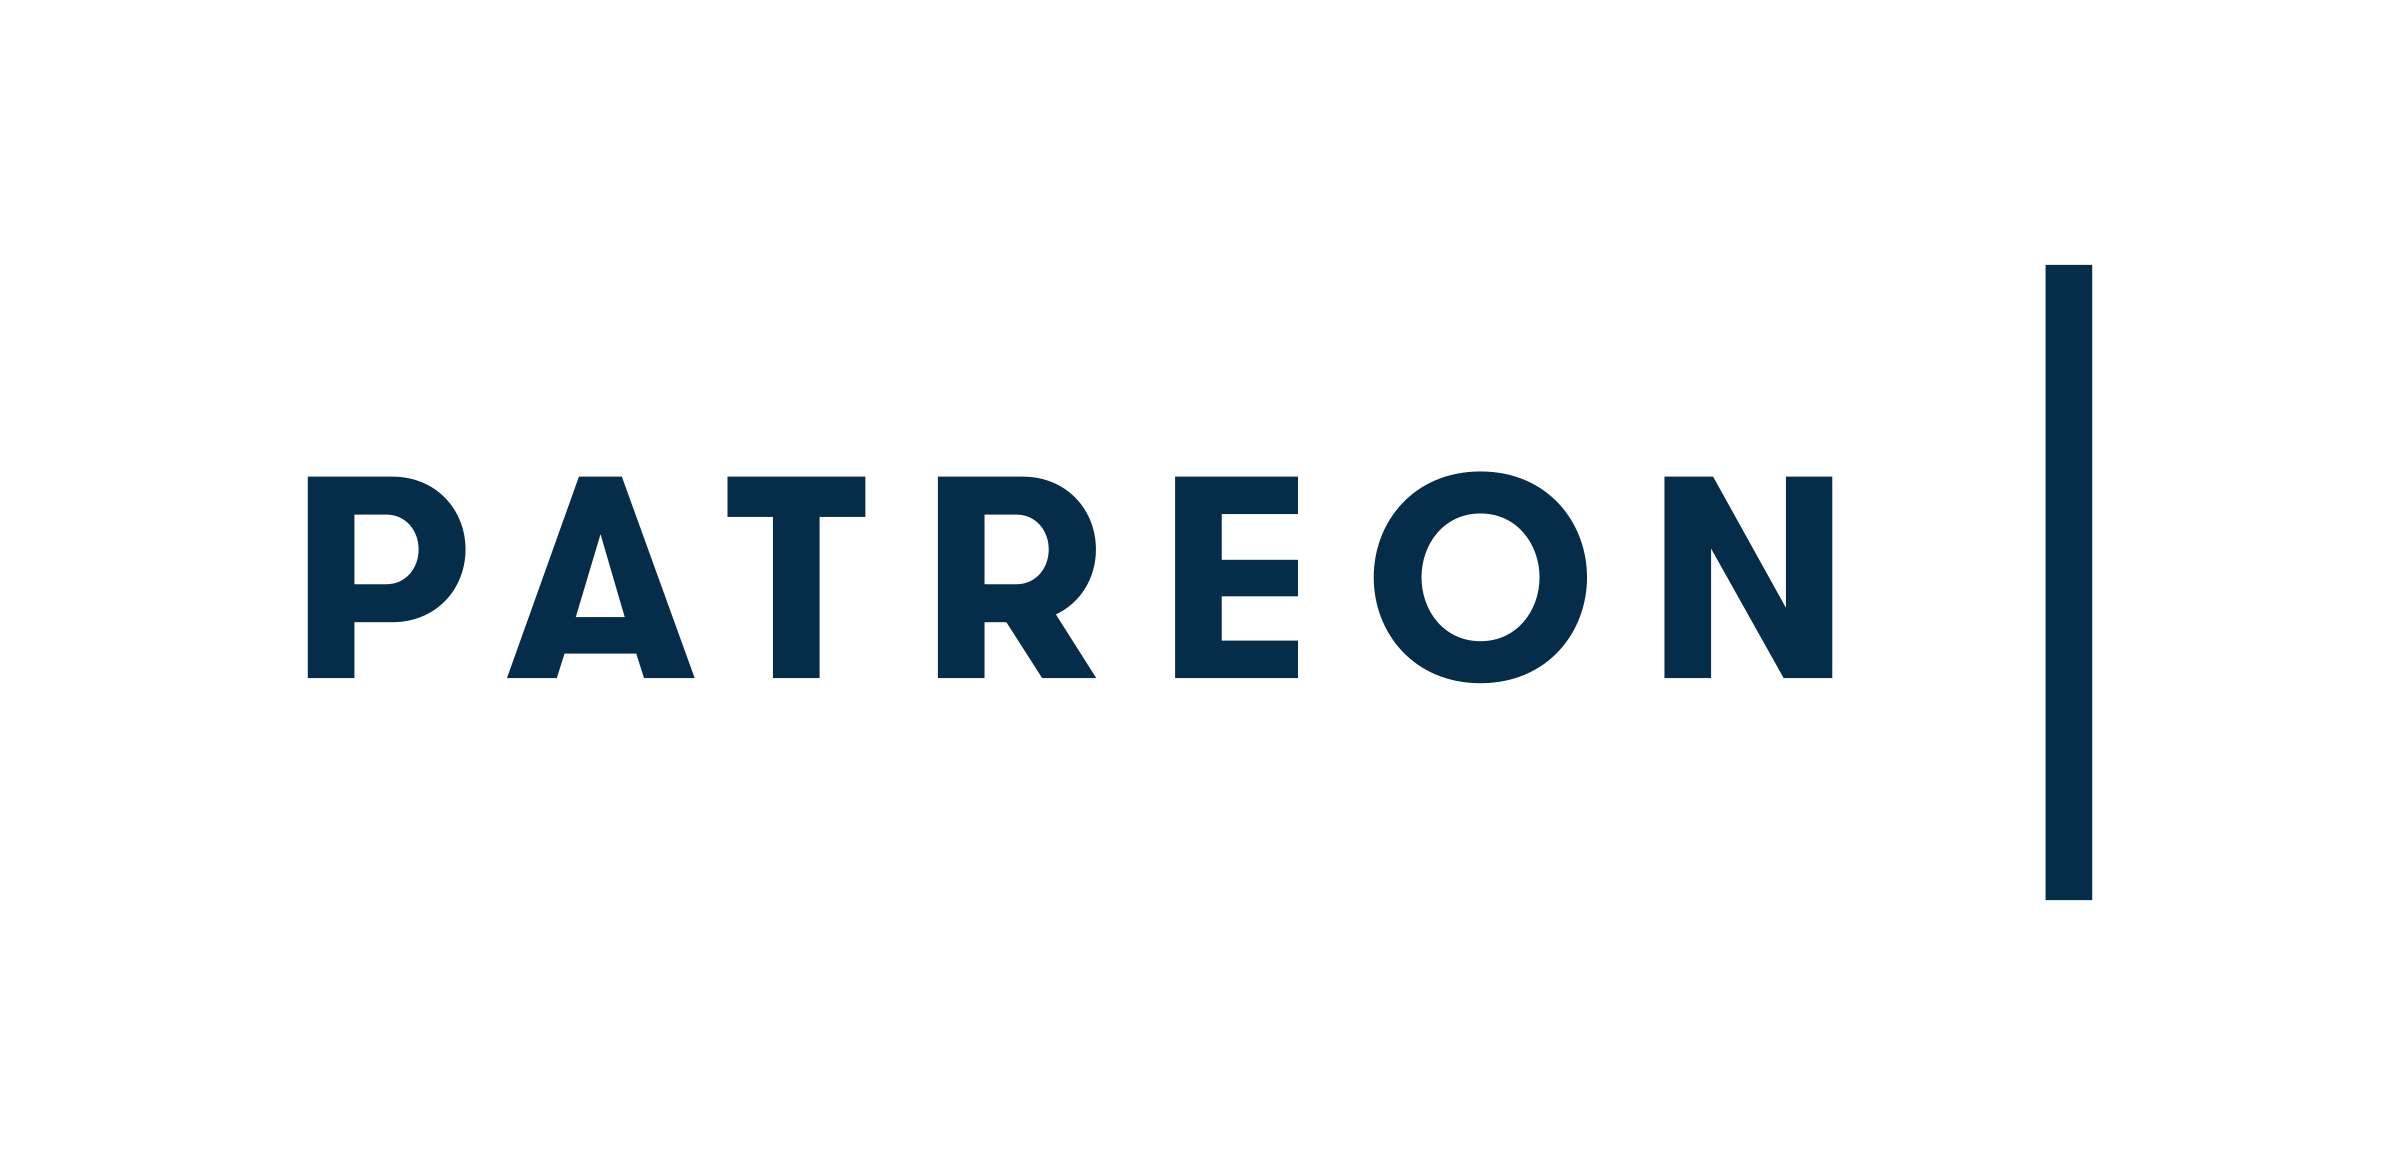 patreon text logo transparent 7324